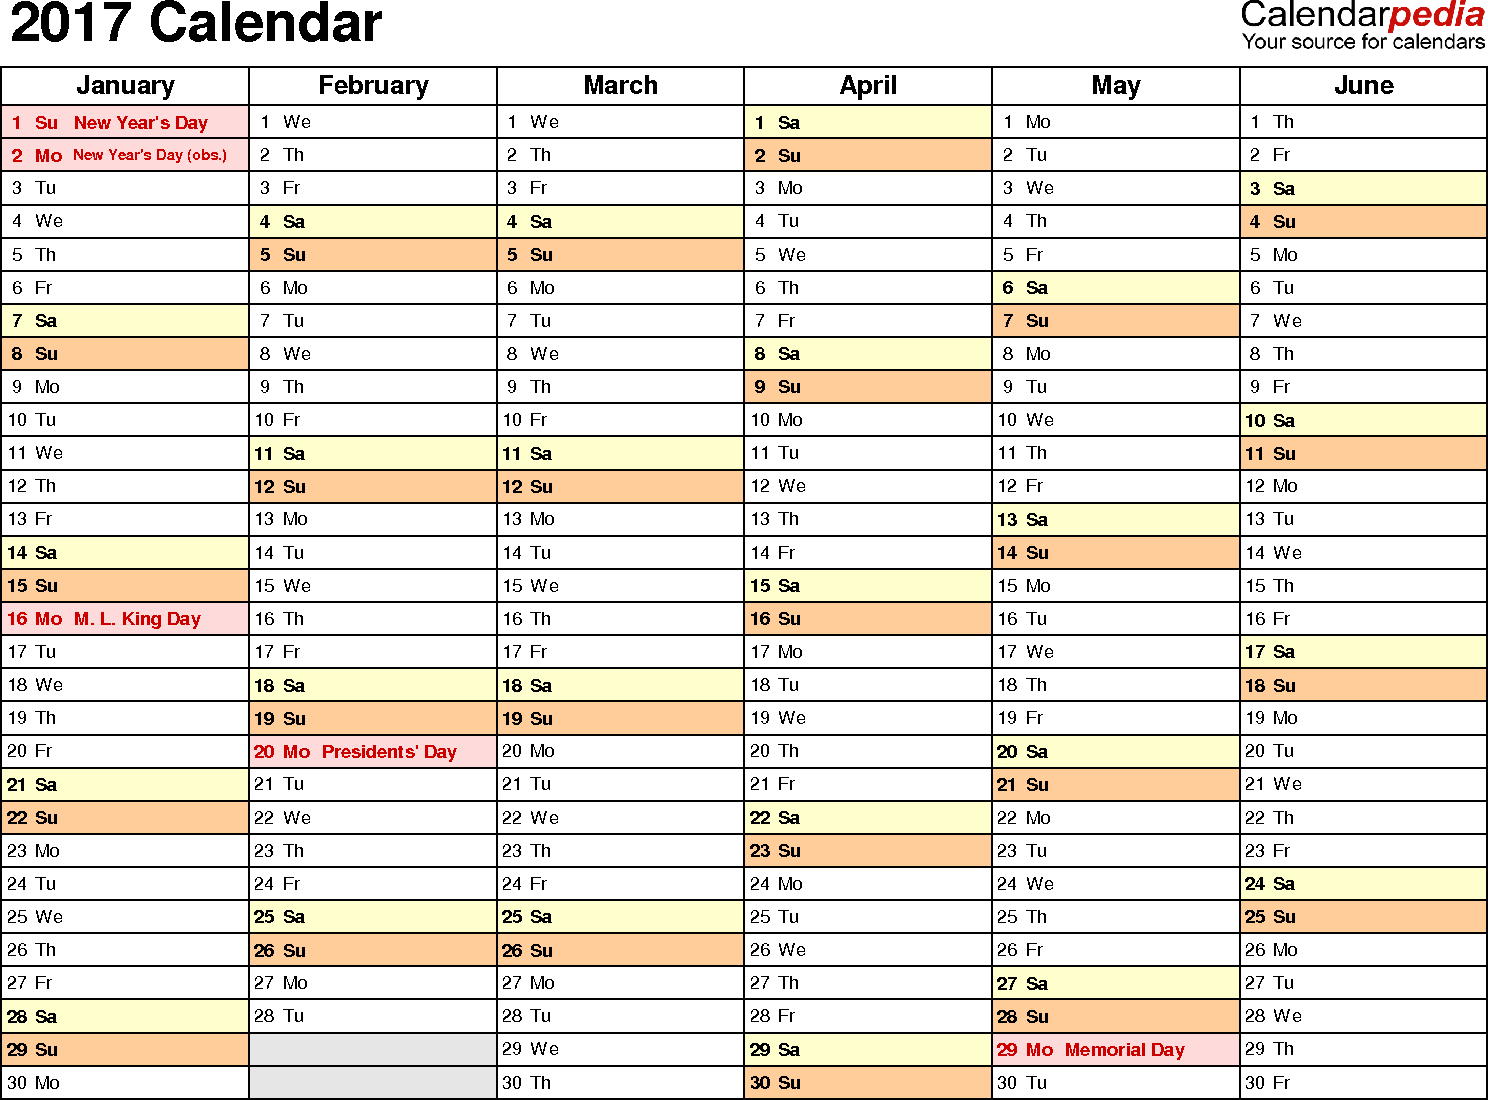 Ediblewildsus  Pleasing  Calendar  Download  Free Printable Excel Templates Xls With Luxury Template   Calendar For Excel Months Horizontally  Pages Landscape Orientation With Divine Excel Label Maker Also Excel Telemedia In Addition Create A Survey In Excel And Double Elimination Bracket Excel As Well As Constant Excel Additionally Microsoft Excel How To Merge Cells From Calendarpediacom With Ediblewildsus  Luxury  Calendar  Download  Free Printable Excel Templates Xls With Divine Template   Calendar For Excel Months Horizontally  Pages Landscape Orientation And Pleasing Excel Label Maker Also Excel Telemedia In Addition Create A Survey In Excel From Calendarpediacom